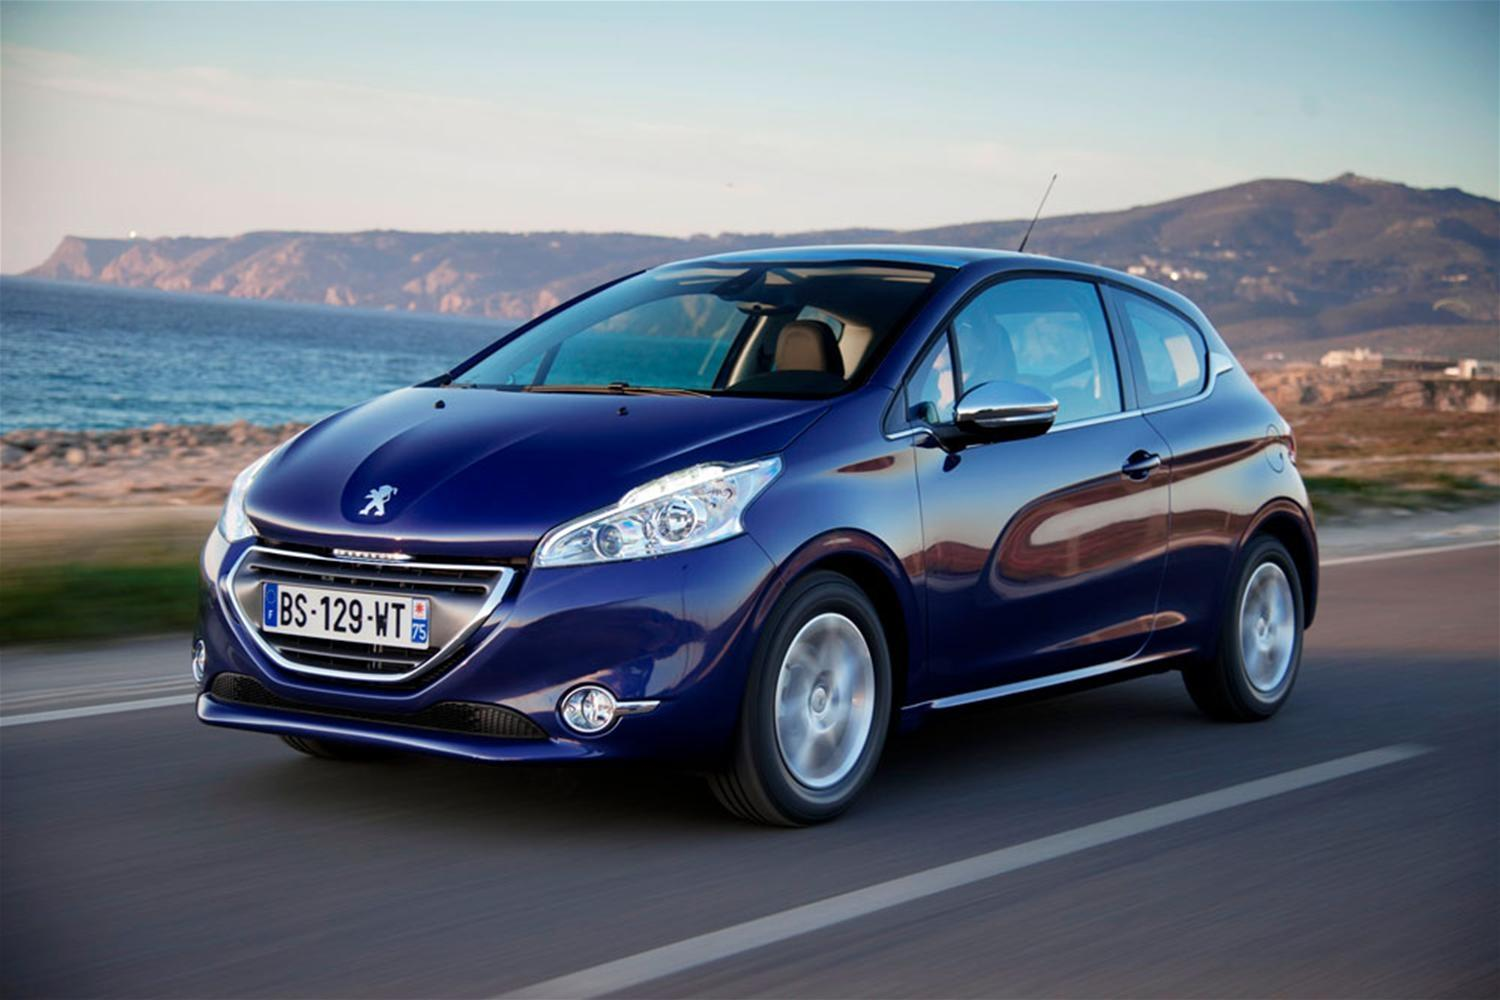 Is the Peugeot 208 better than the Fiesta?